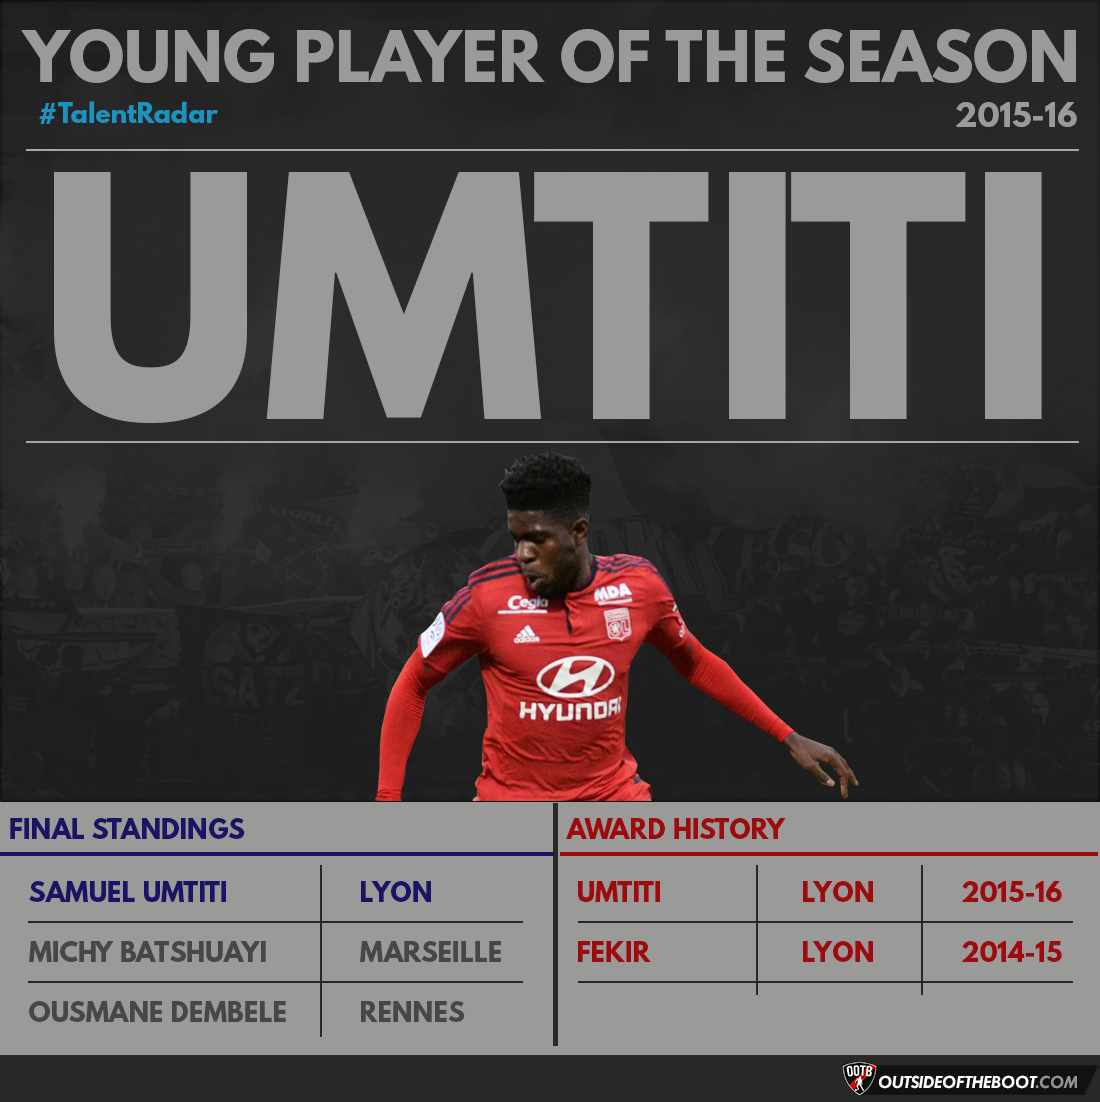 Ligue 1 Young Player of the Season 2015-16